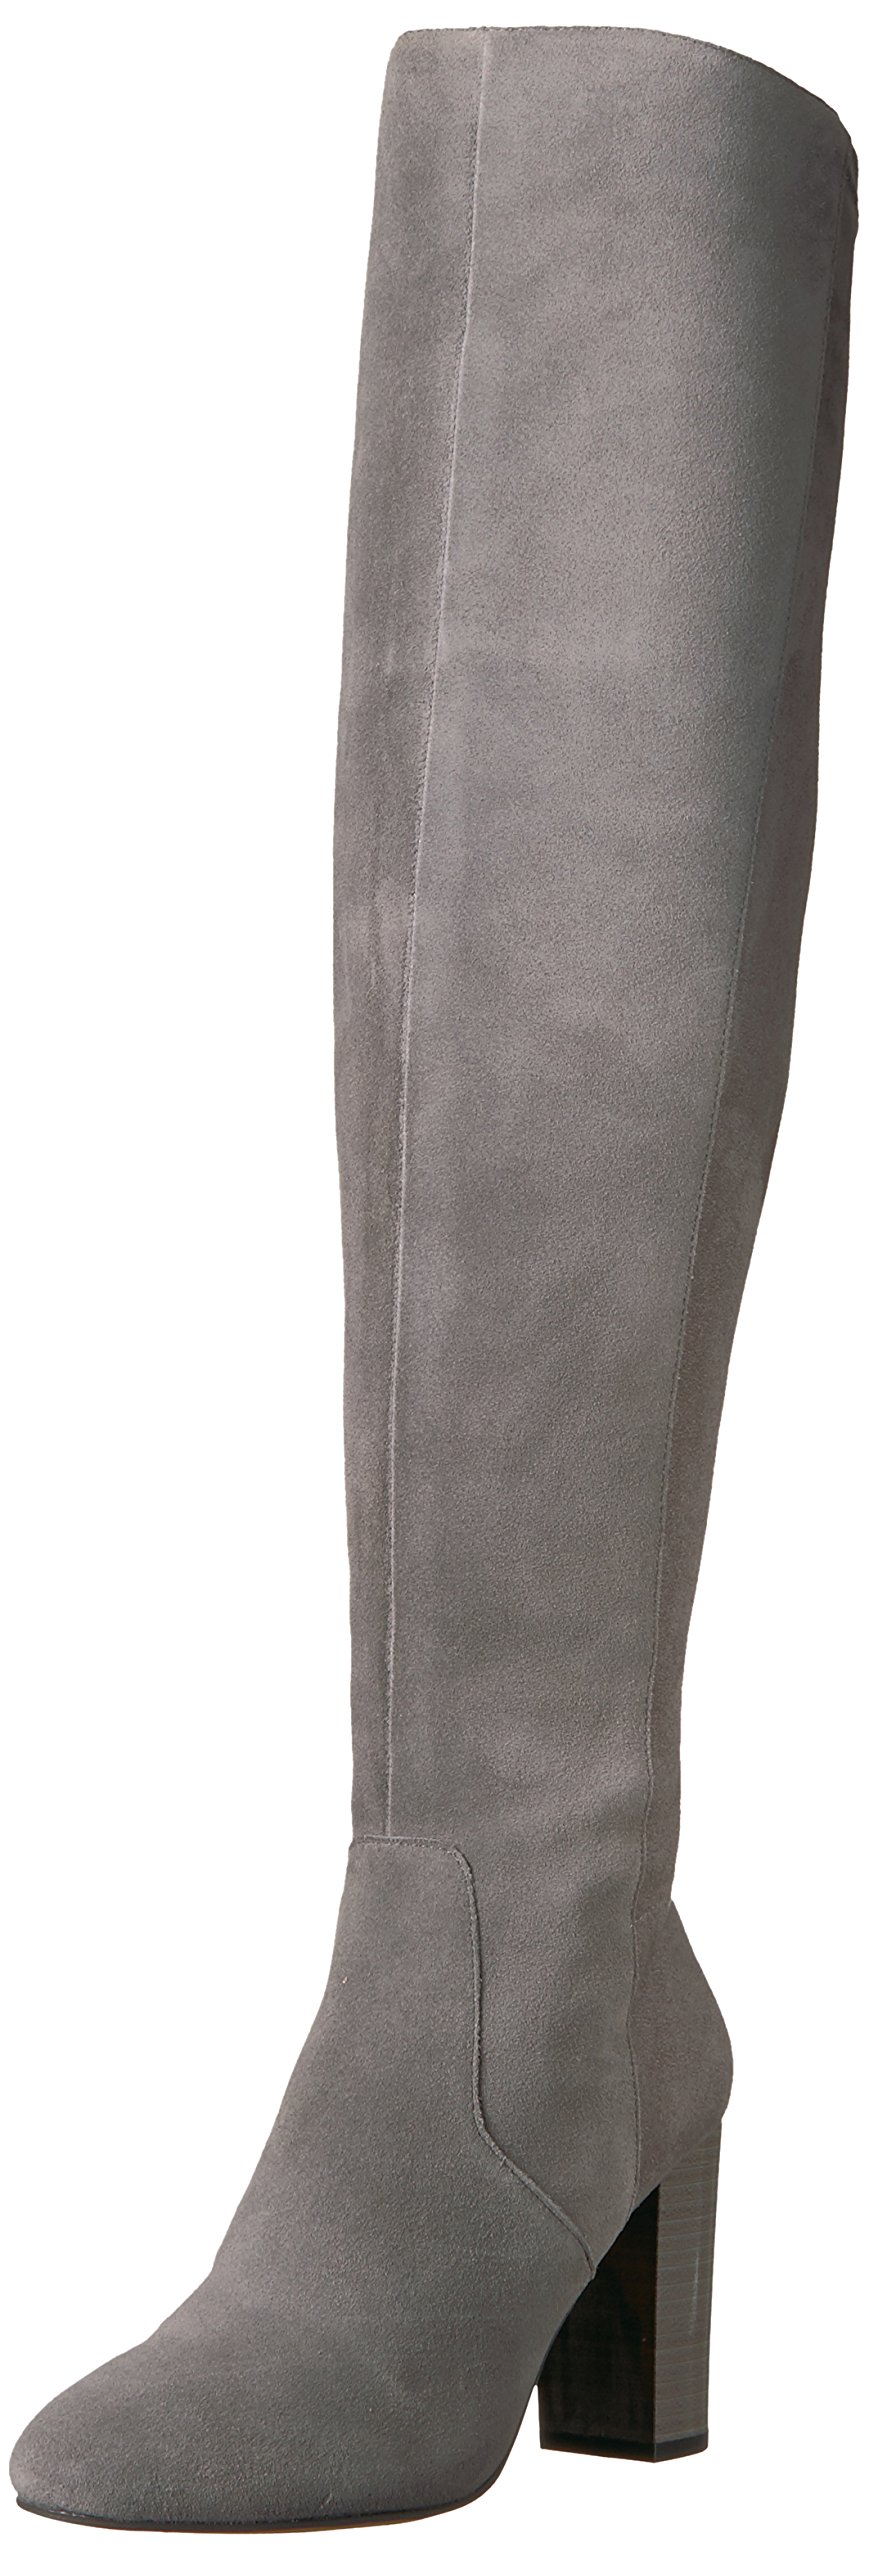 The Fix Women's Lyndsey Over-The-Knee Block-Heel Boot, Elephant Grey, 6.5 M US by The Fix (Image #1)